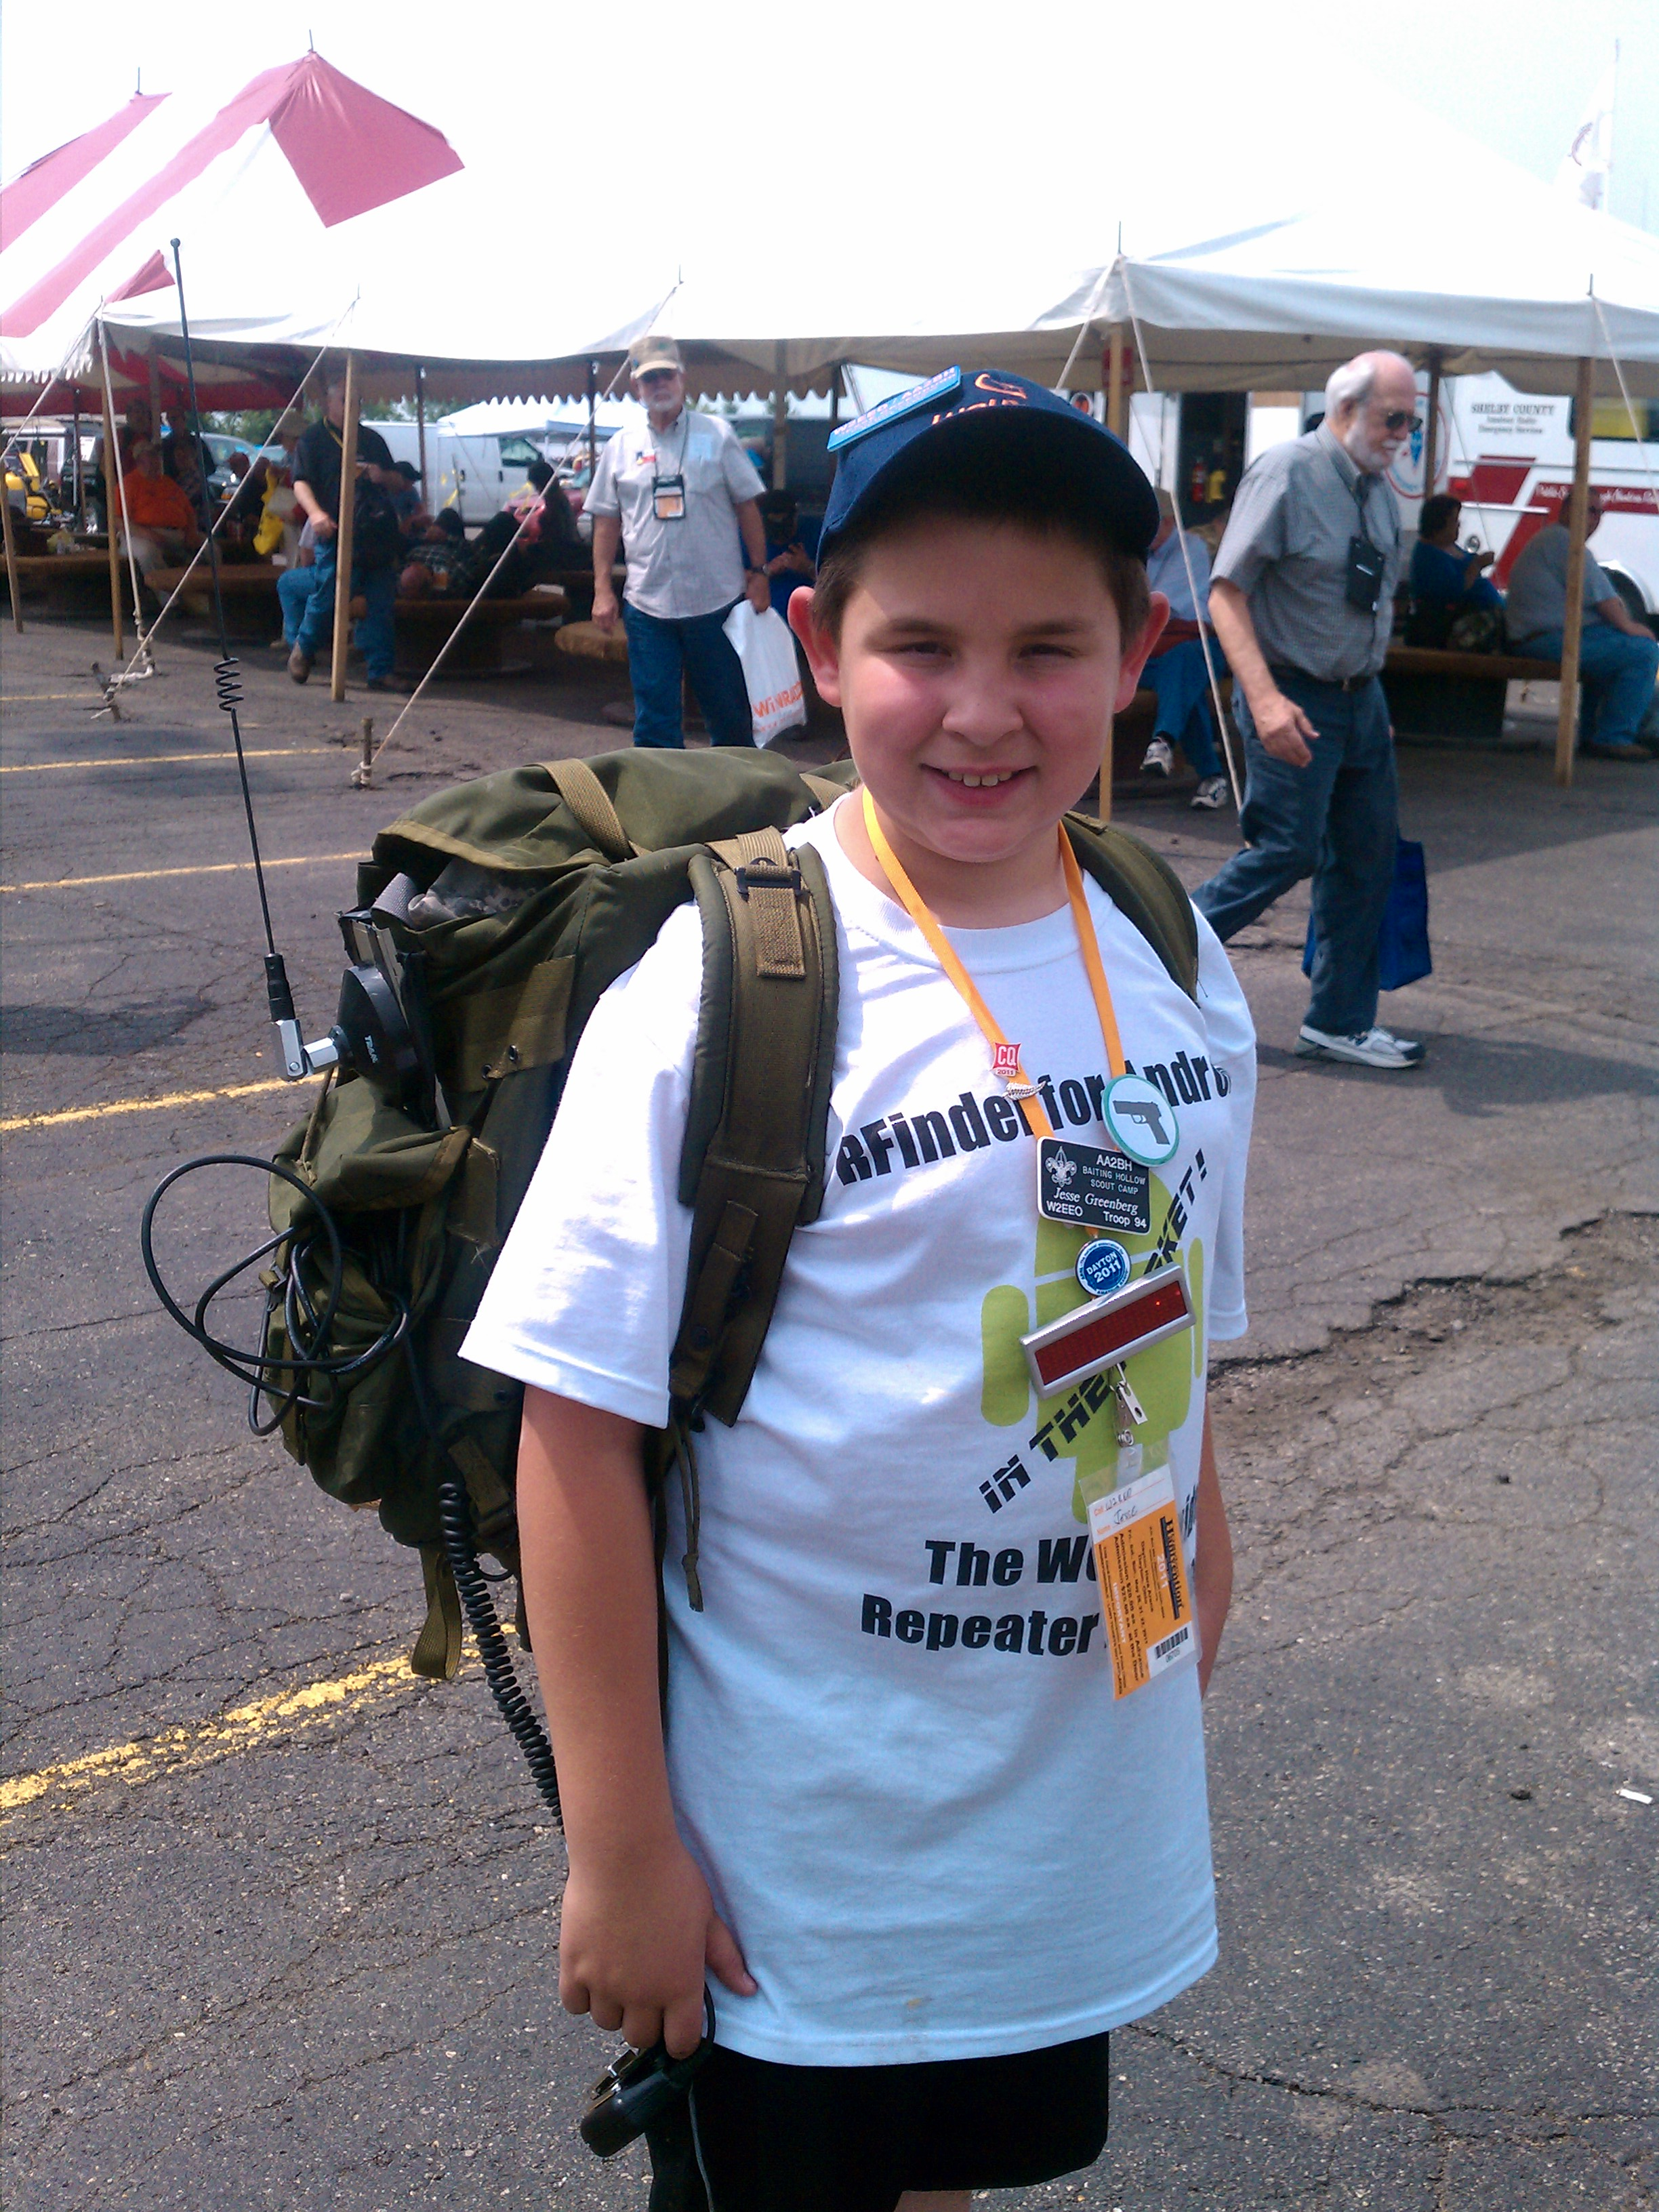 Youth Hamradio Fun A First Timer S Adventure At The